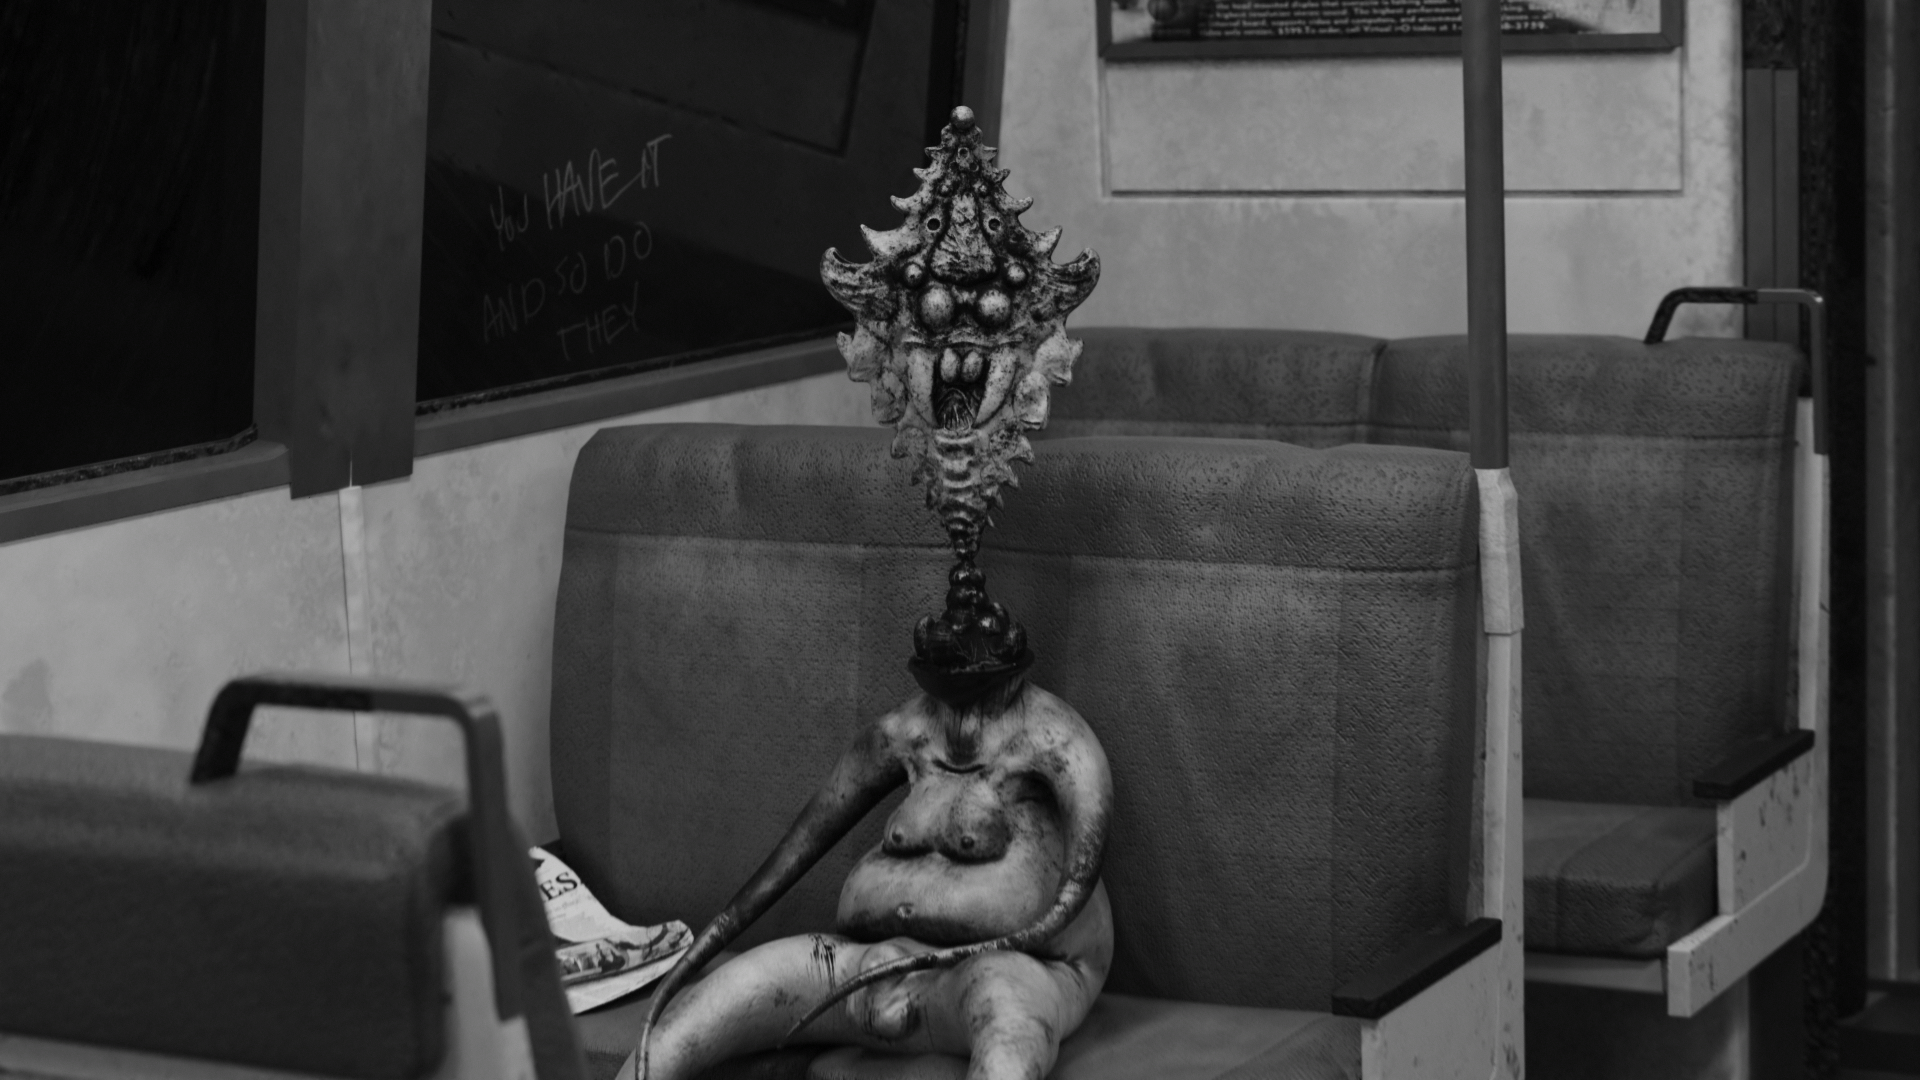 Black-and-white image of a scary creature on a BART seat.